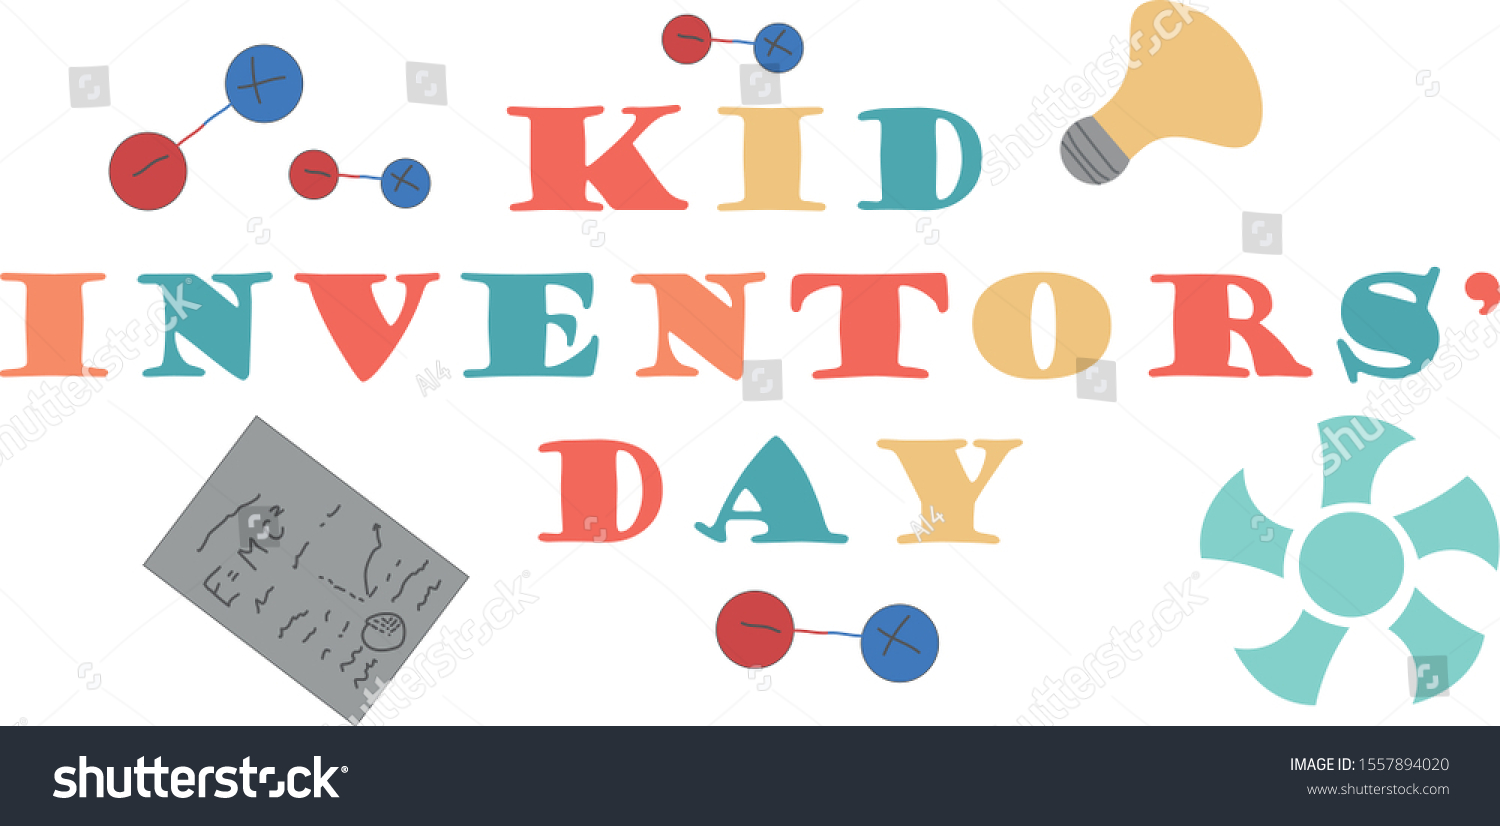 Science Media Guru Inventors And Their Inventions For Kids